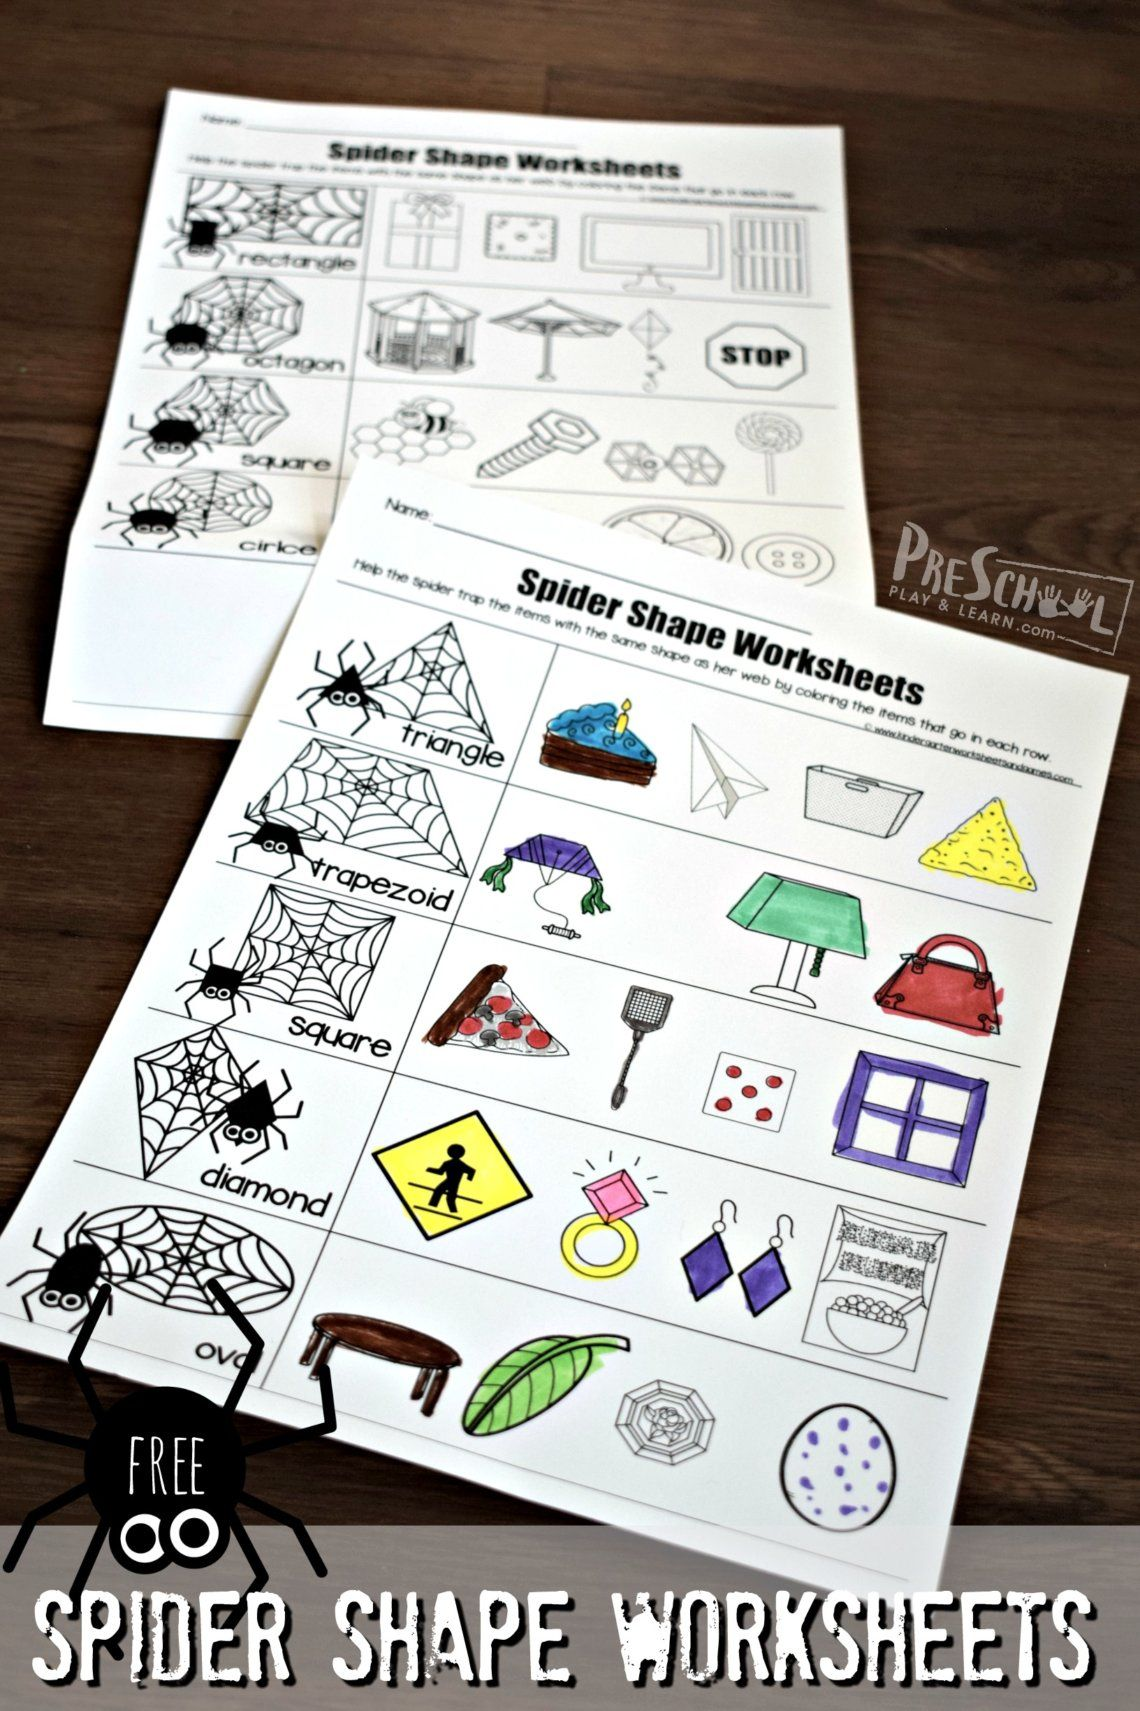 Free Spider Shape Worksheets